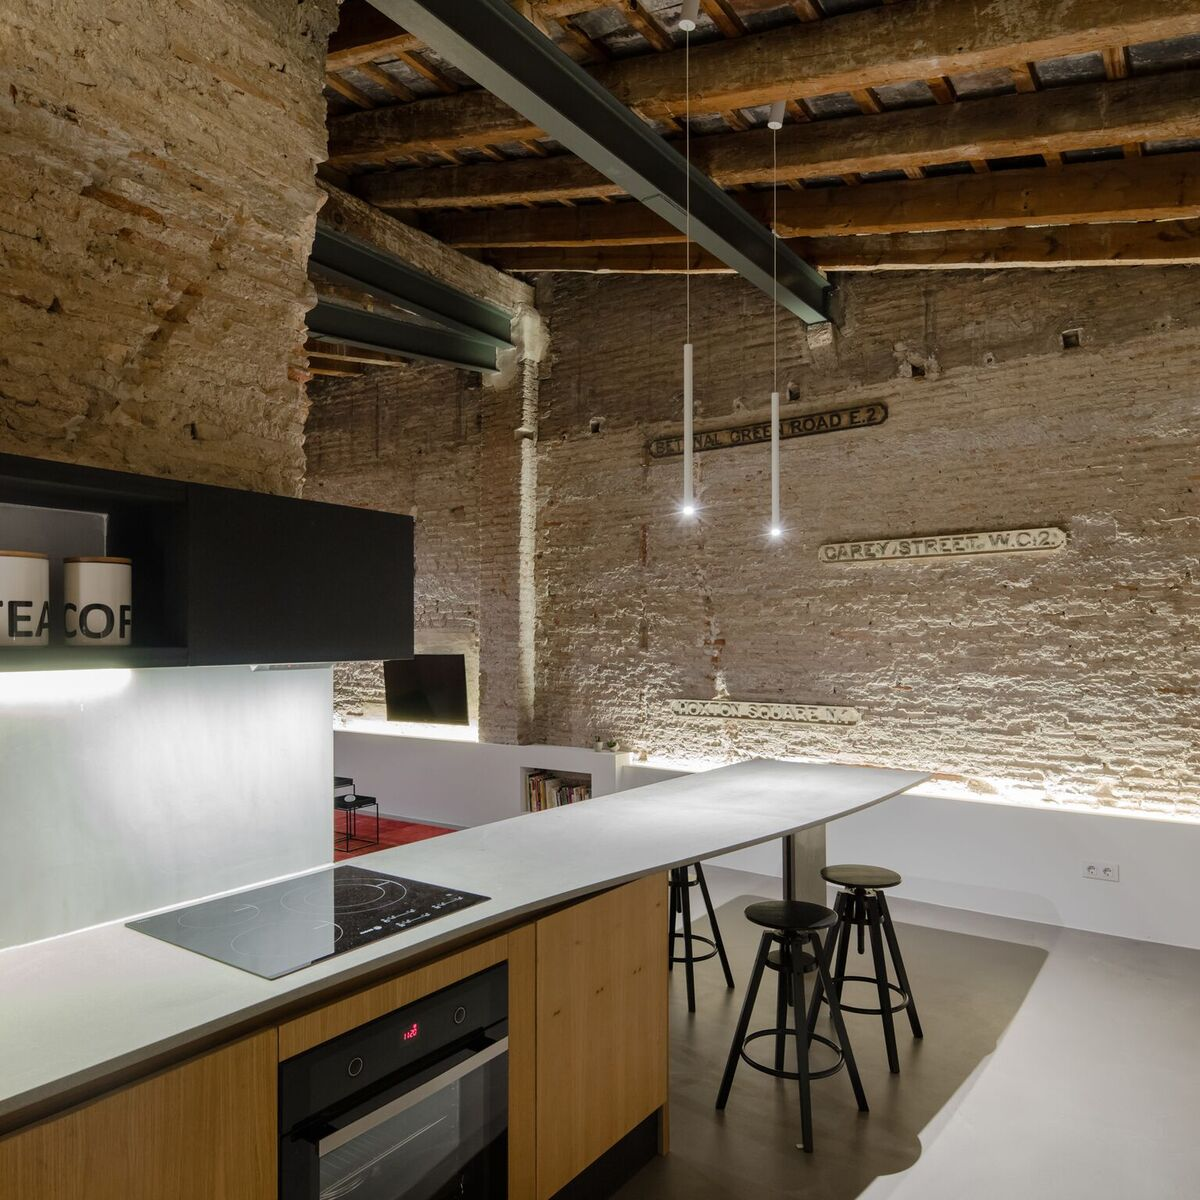 The texture of the exposed brick walls is beautifully highlighted by the accent lighting